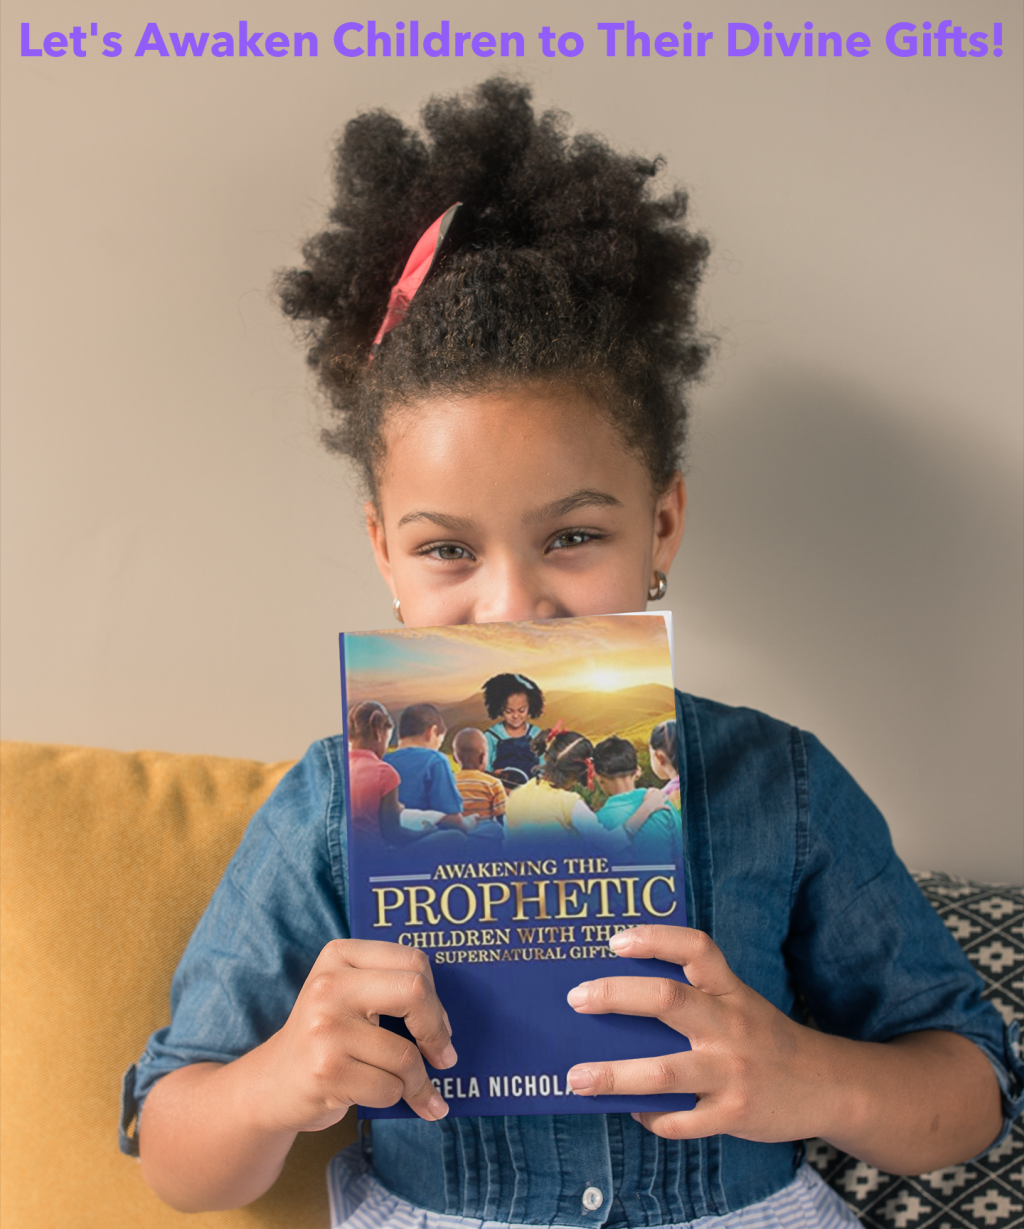 Awakening the Prophetic Children with Their Supernatural Gifts